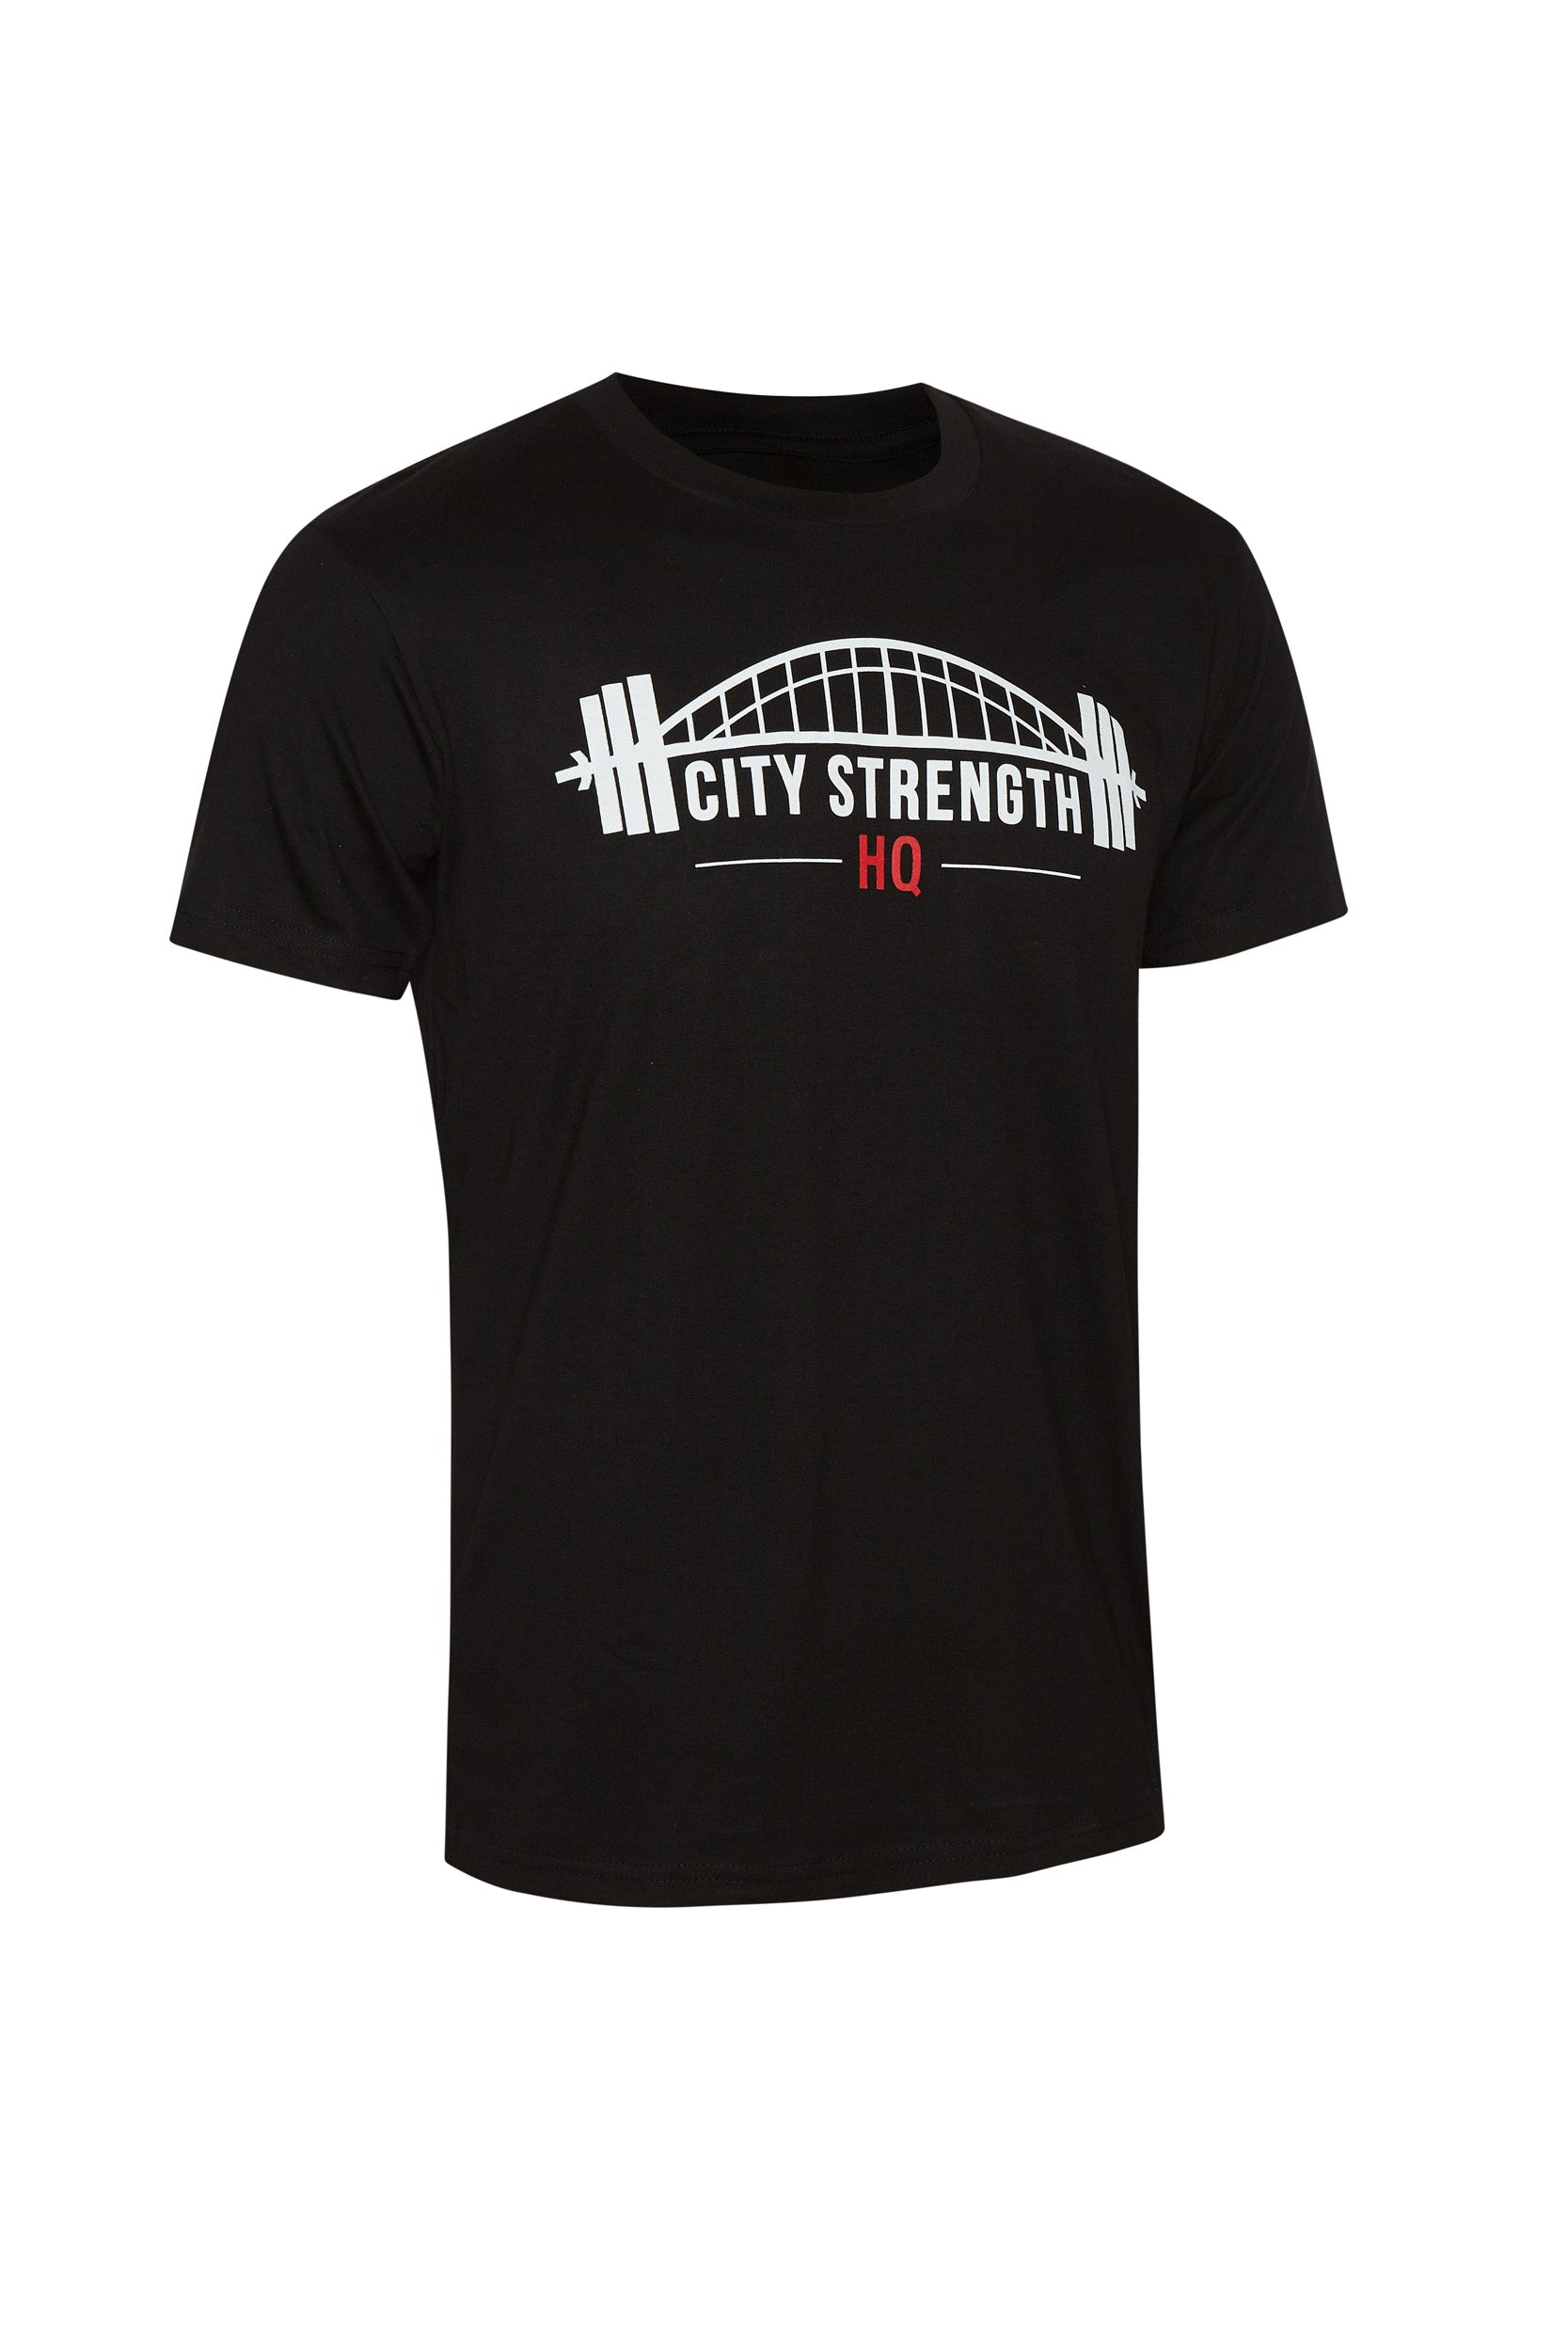 City Strength HQ T Shirt